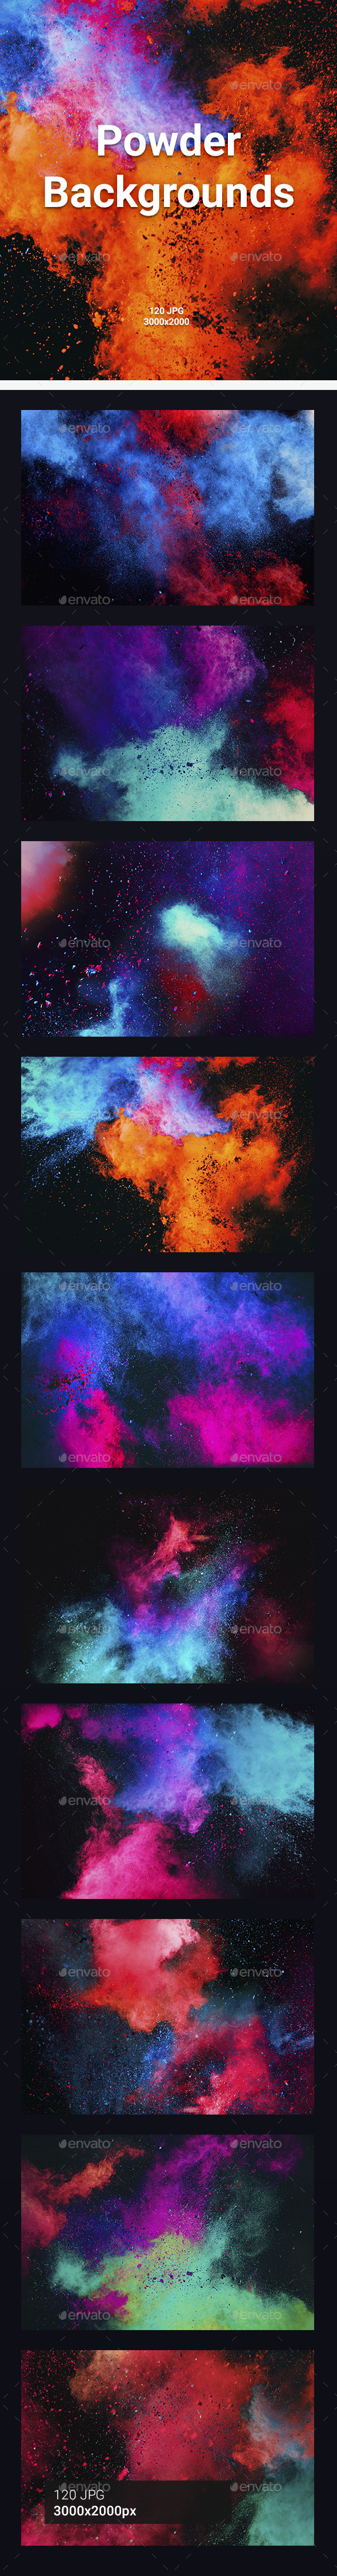 120 Powder Backgrounds - Abstract Backgrounds